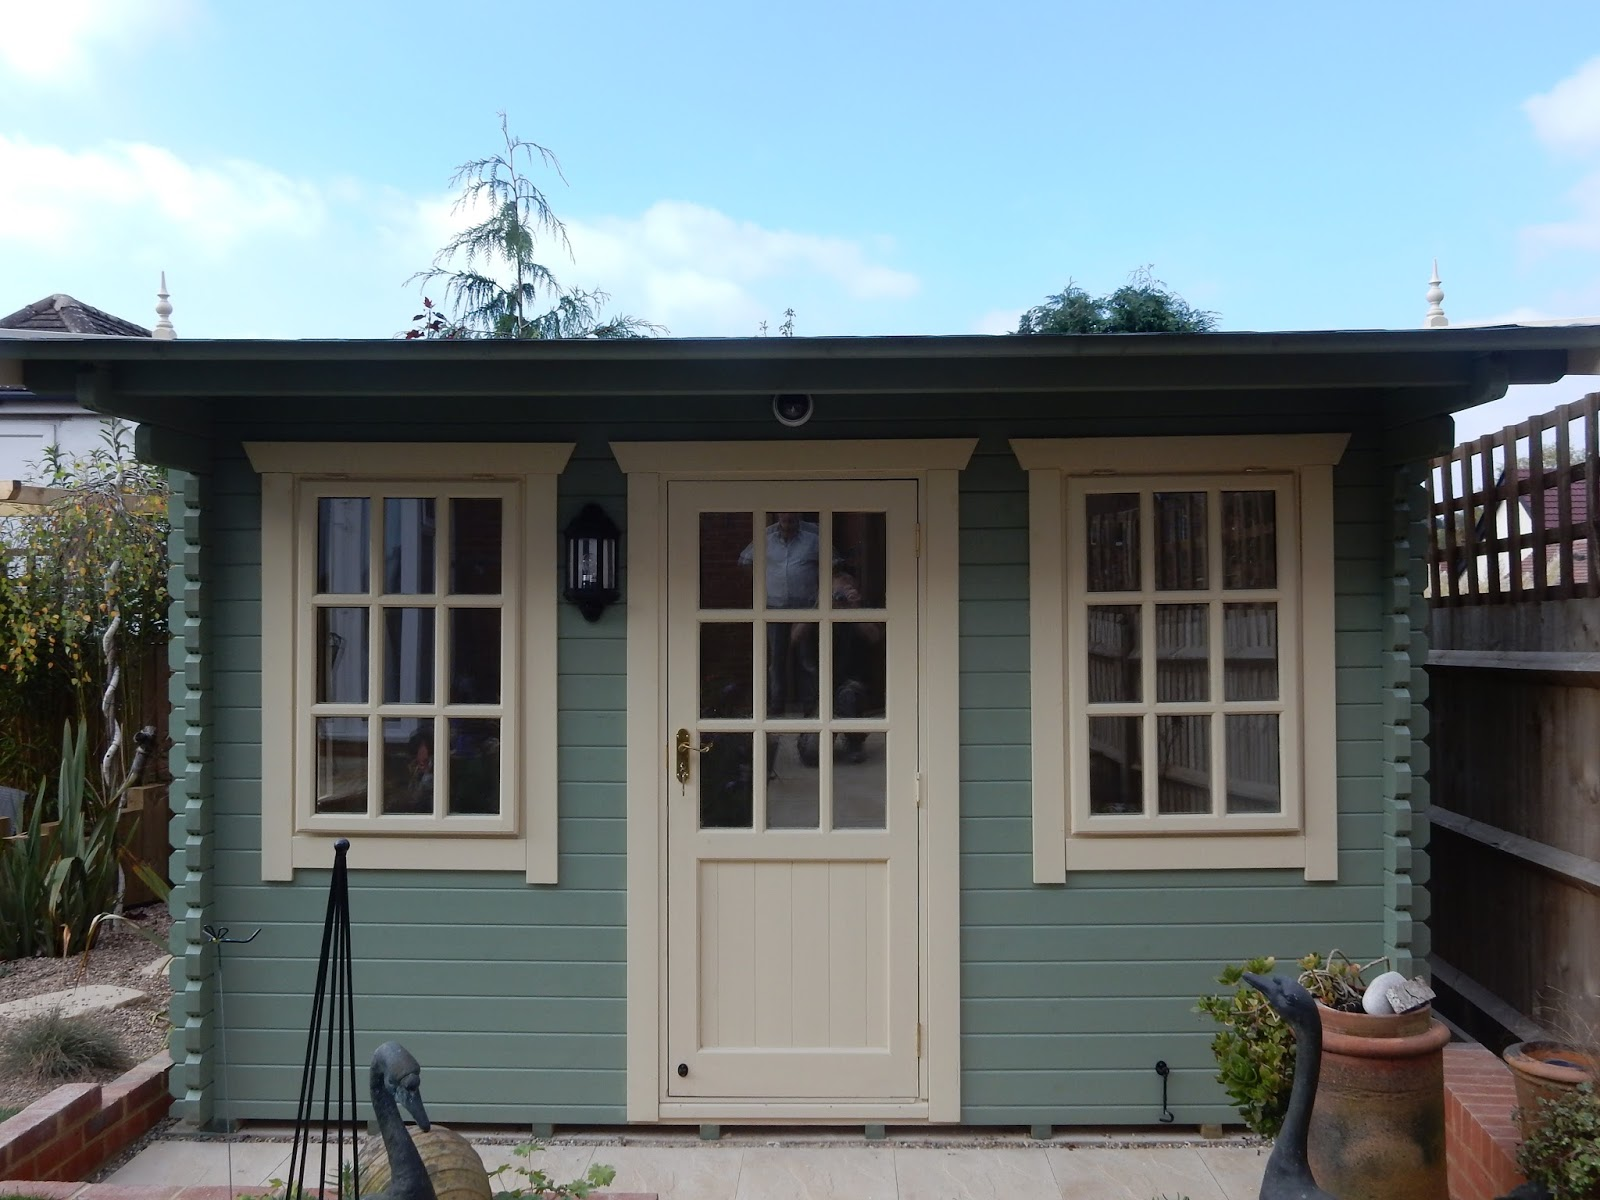 Southwick 39 S Garden Offices 12 39 X 11 39 Fully Insulated